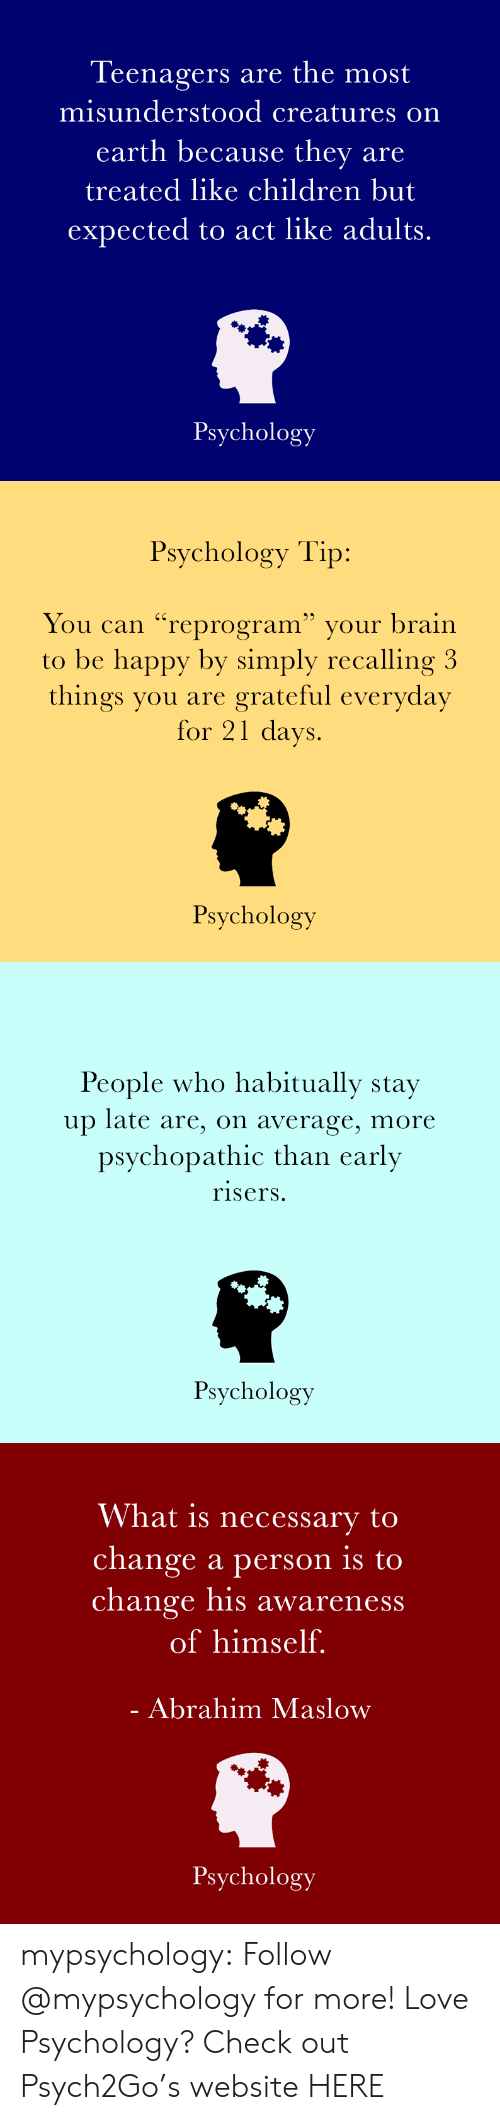 """psychopathic: Teenagers are the most  misunderstood creatures on  earth because they are  treated like children but  expected to act like adults.  Psychology   Psychology Tip:  You can """"reprogram"""" your brain  to be happy by simply recalling 3  things you are grateful everyday  for 21 days  Psychology   People who habitually stav  up late are, on average, more  psychopathic than early  risers.  Psychology   What is necessary to  change a person is to  change his awareness  of himself.  Abrahim Maslow  Psychology mypsychology:  Follow @mypsychology for more! Love Psychology? Check out Psych2Go's website HERE"""